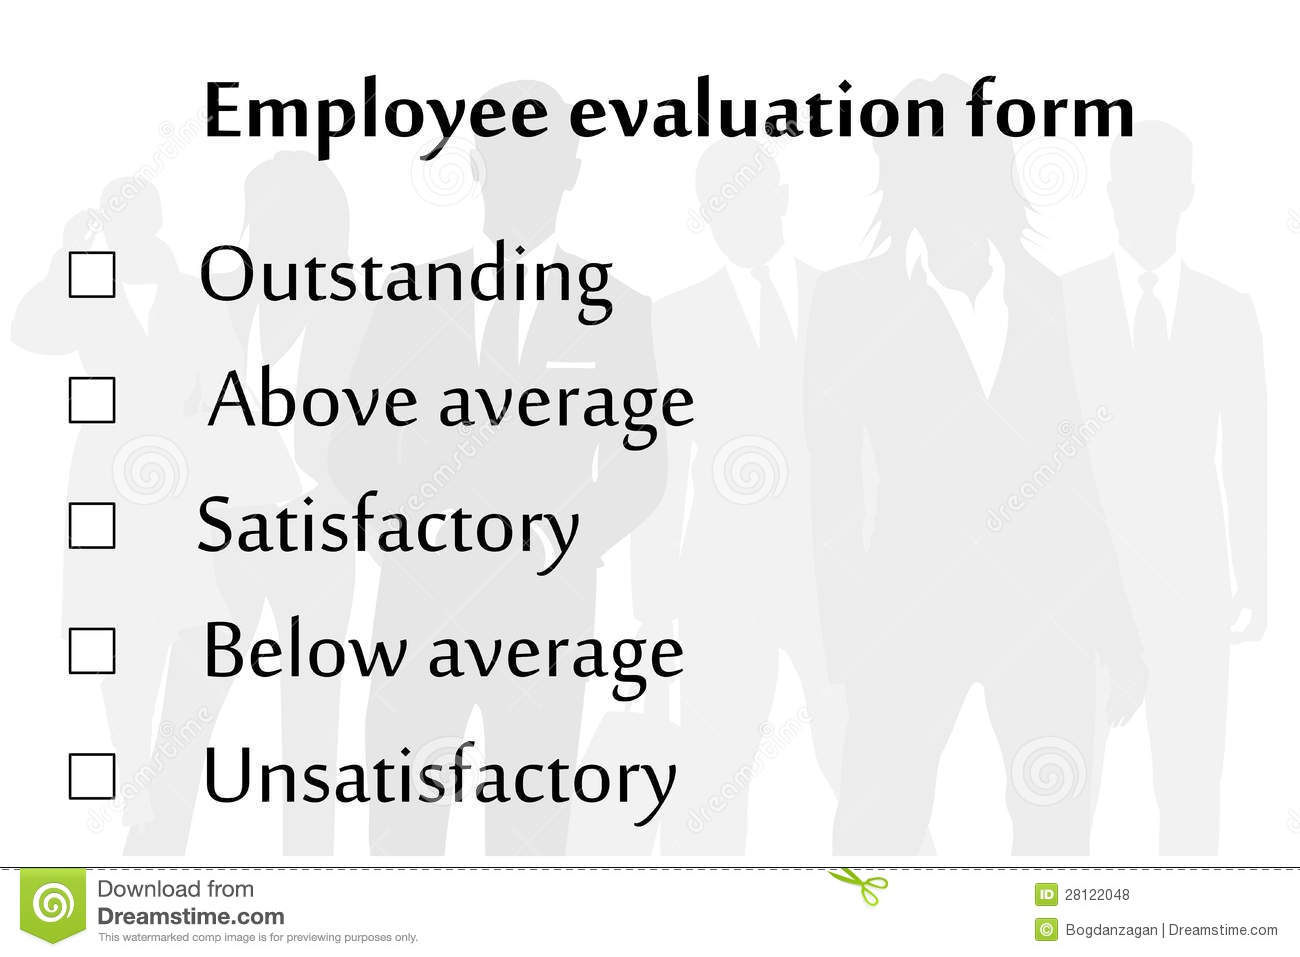 Royalty Free Stock Photos: Employee evaluation form. Image